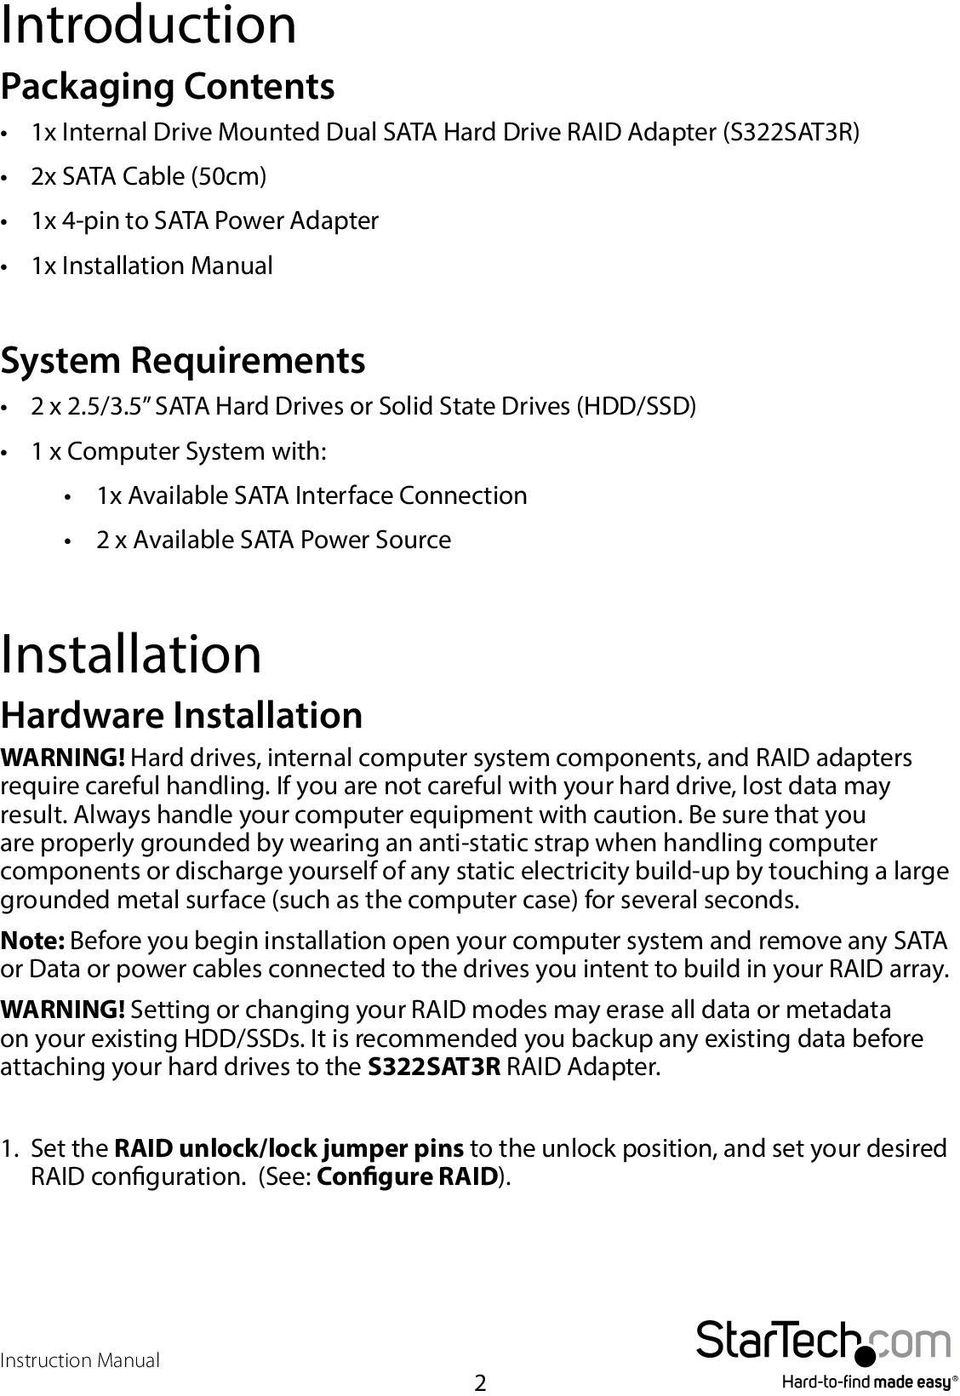 5 SATA Hard Drives or Solid State Drives (HDD/SSD) 1 x Computer System with: 1x Available SATA Interface Connection 2 x Available SATA Power Source Installation Hardware Installation WARNING!